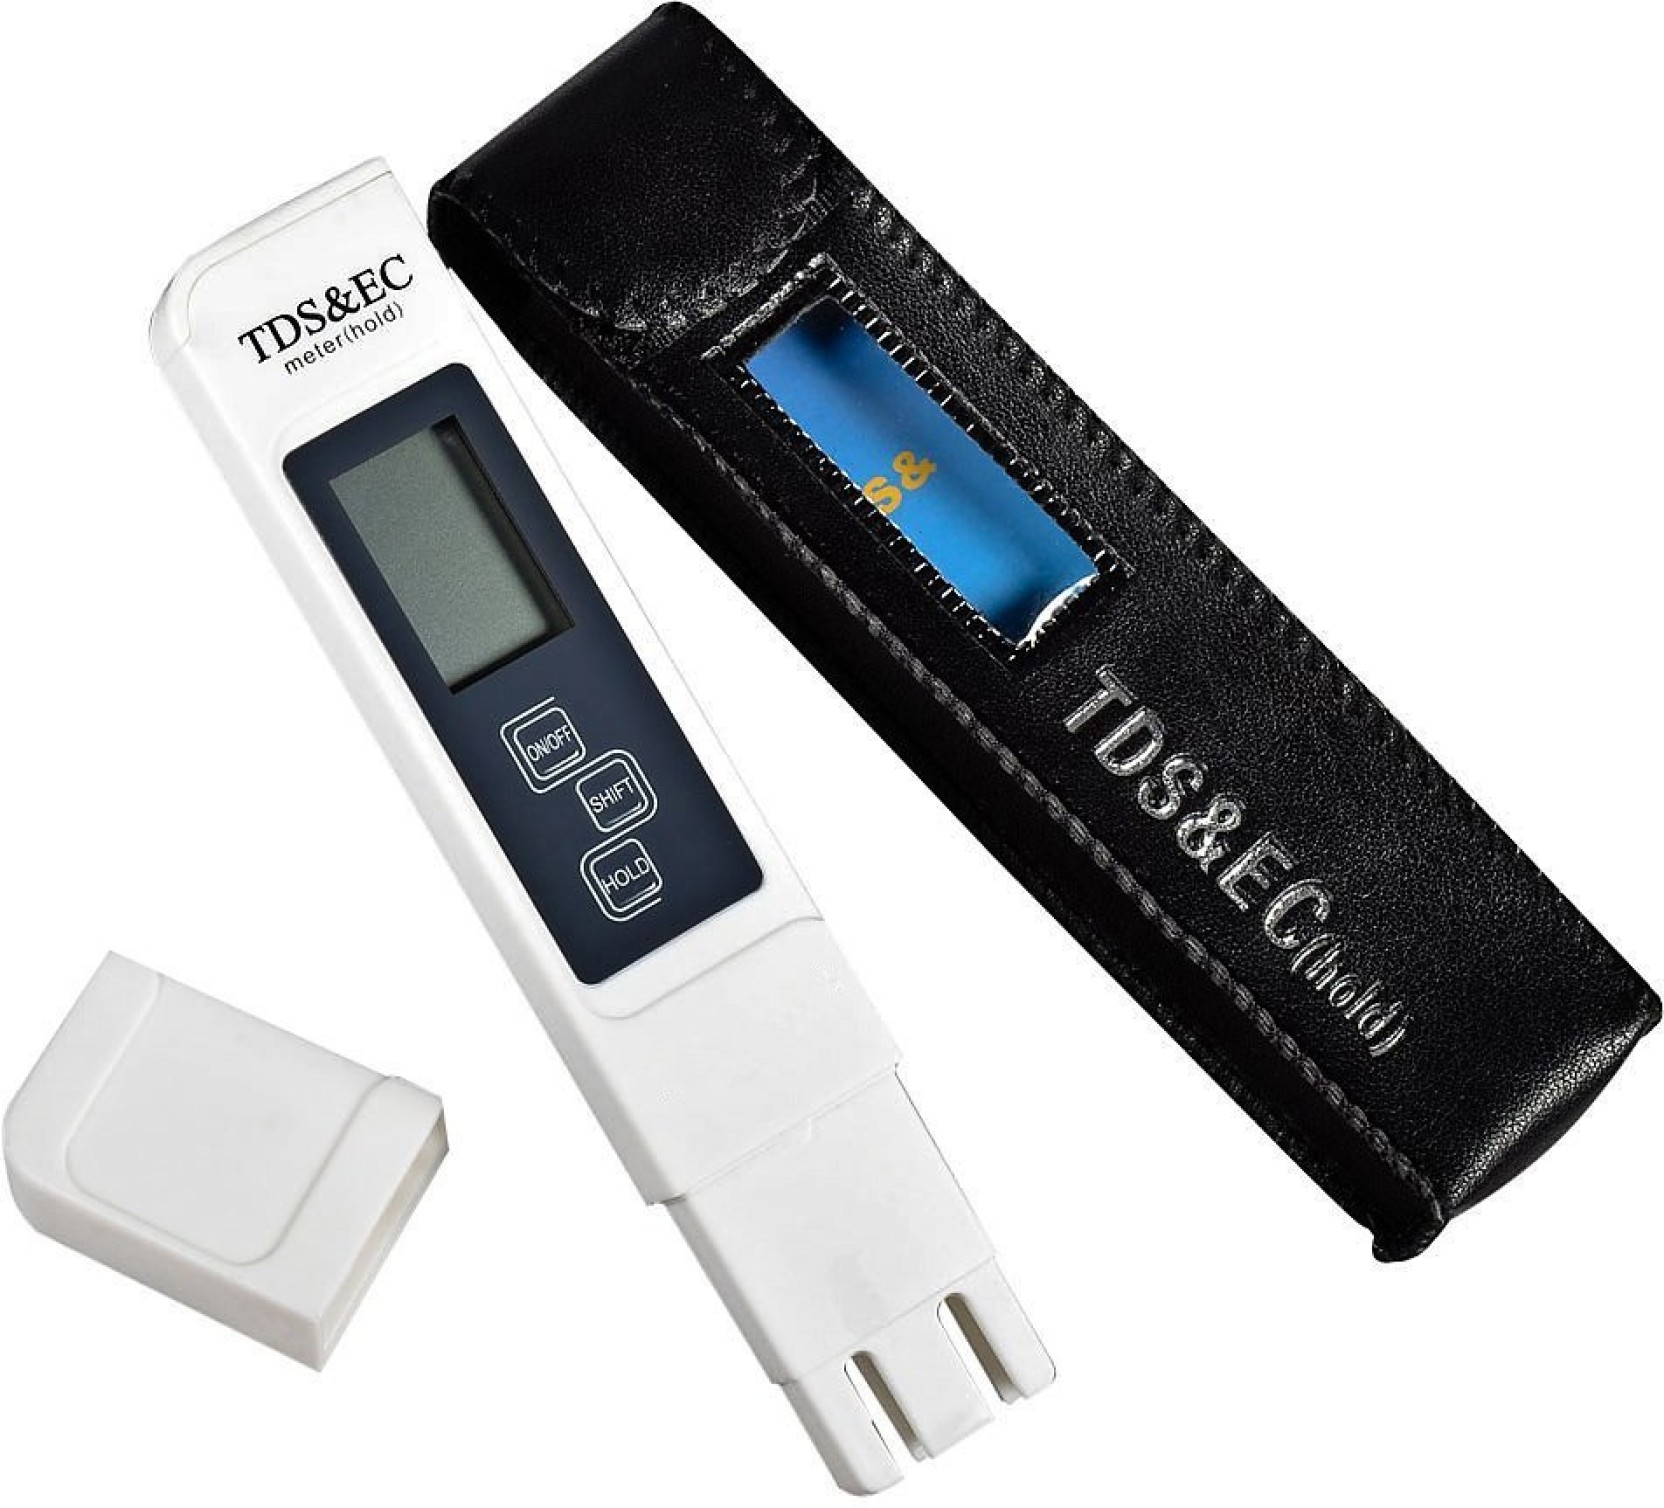 Divinext Tds Large Display Screen 3 In 1 Ec Temp Meter With Temperature Dual Backlight Ez 2b Add To Cart